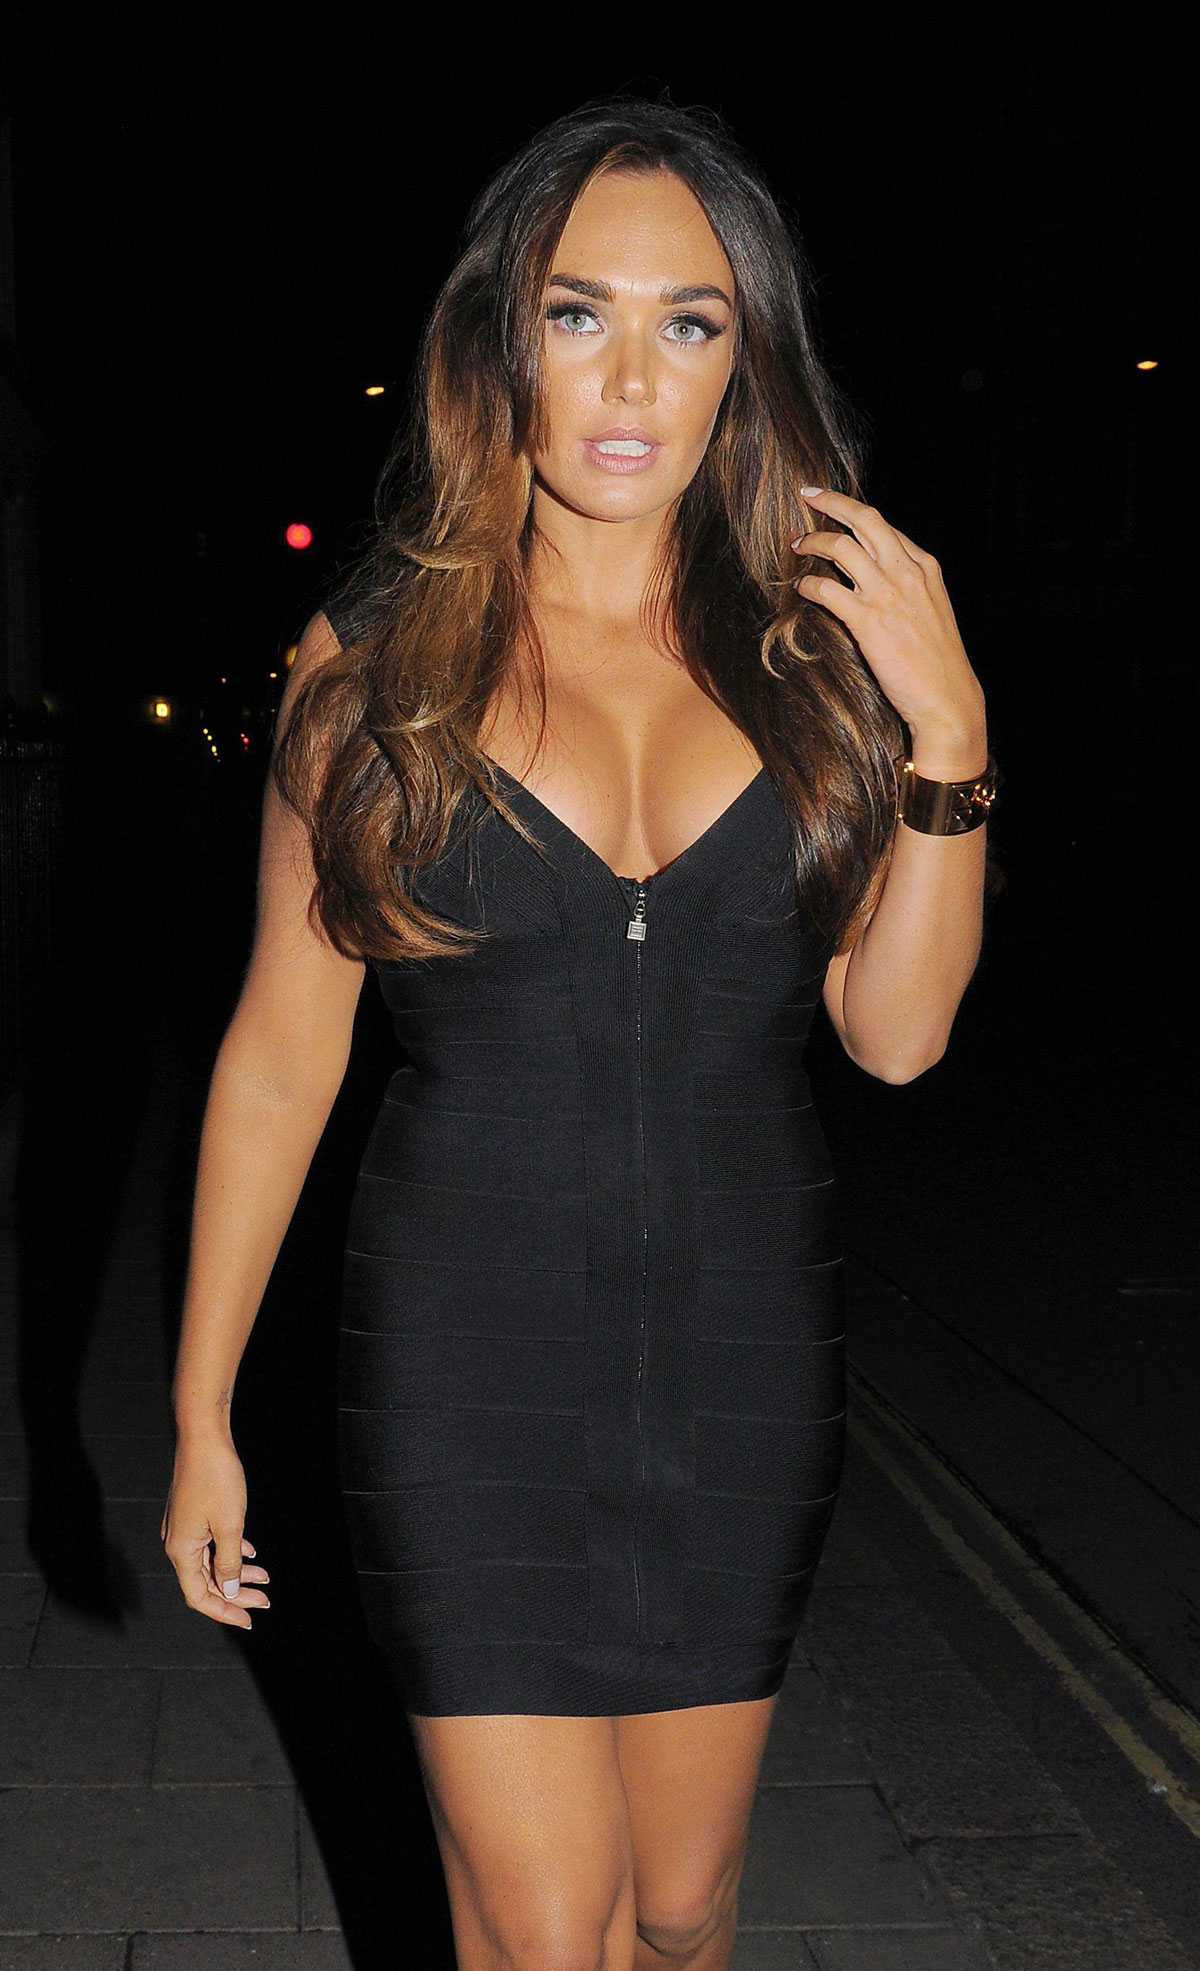 TAMARA ECCLESTONE at Cipriani Bar and Nightclub  HawtCelebs